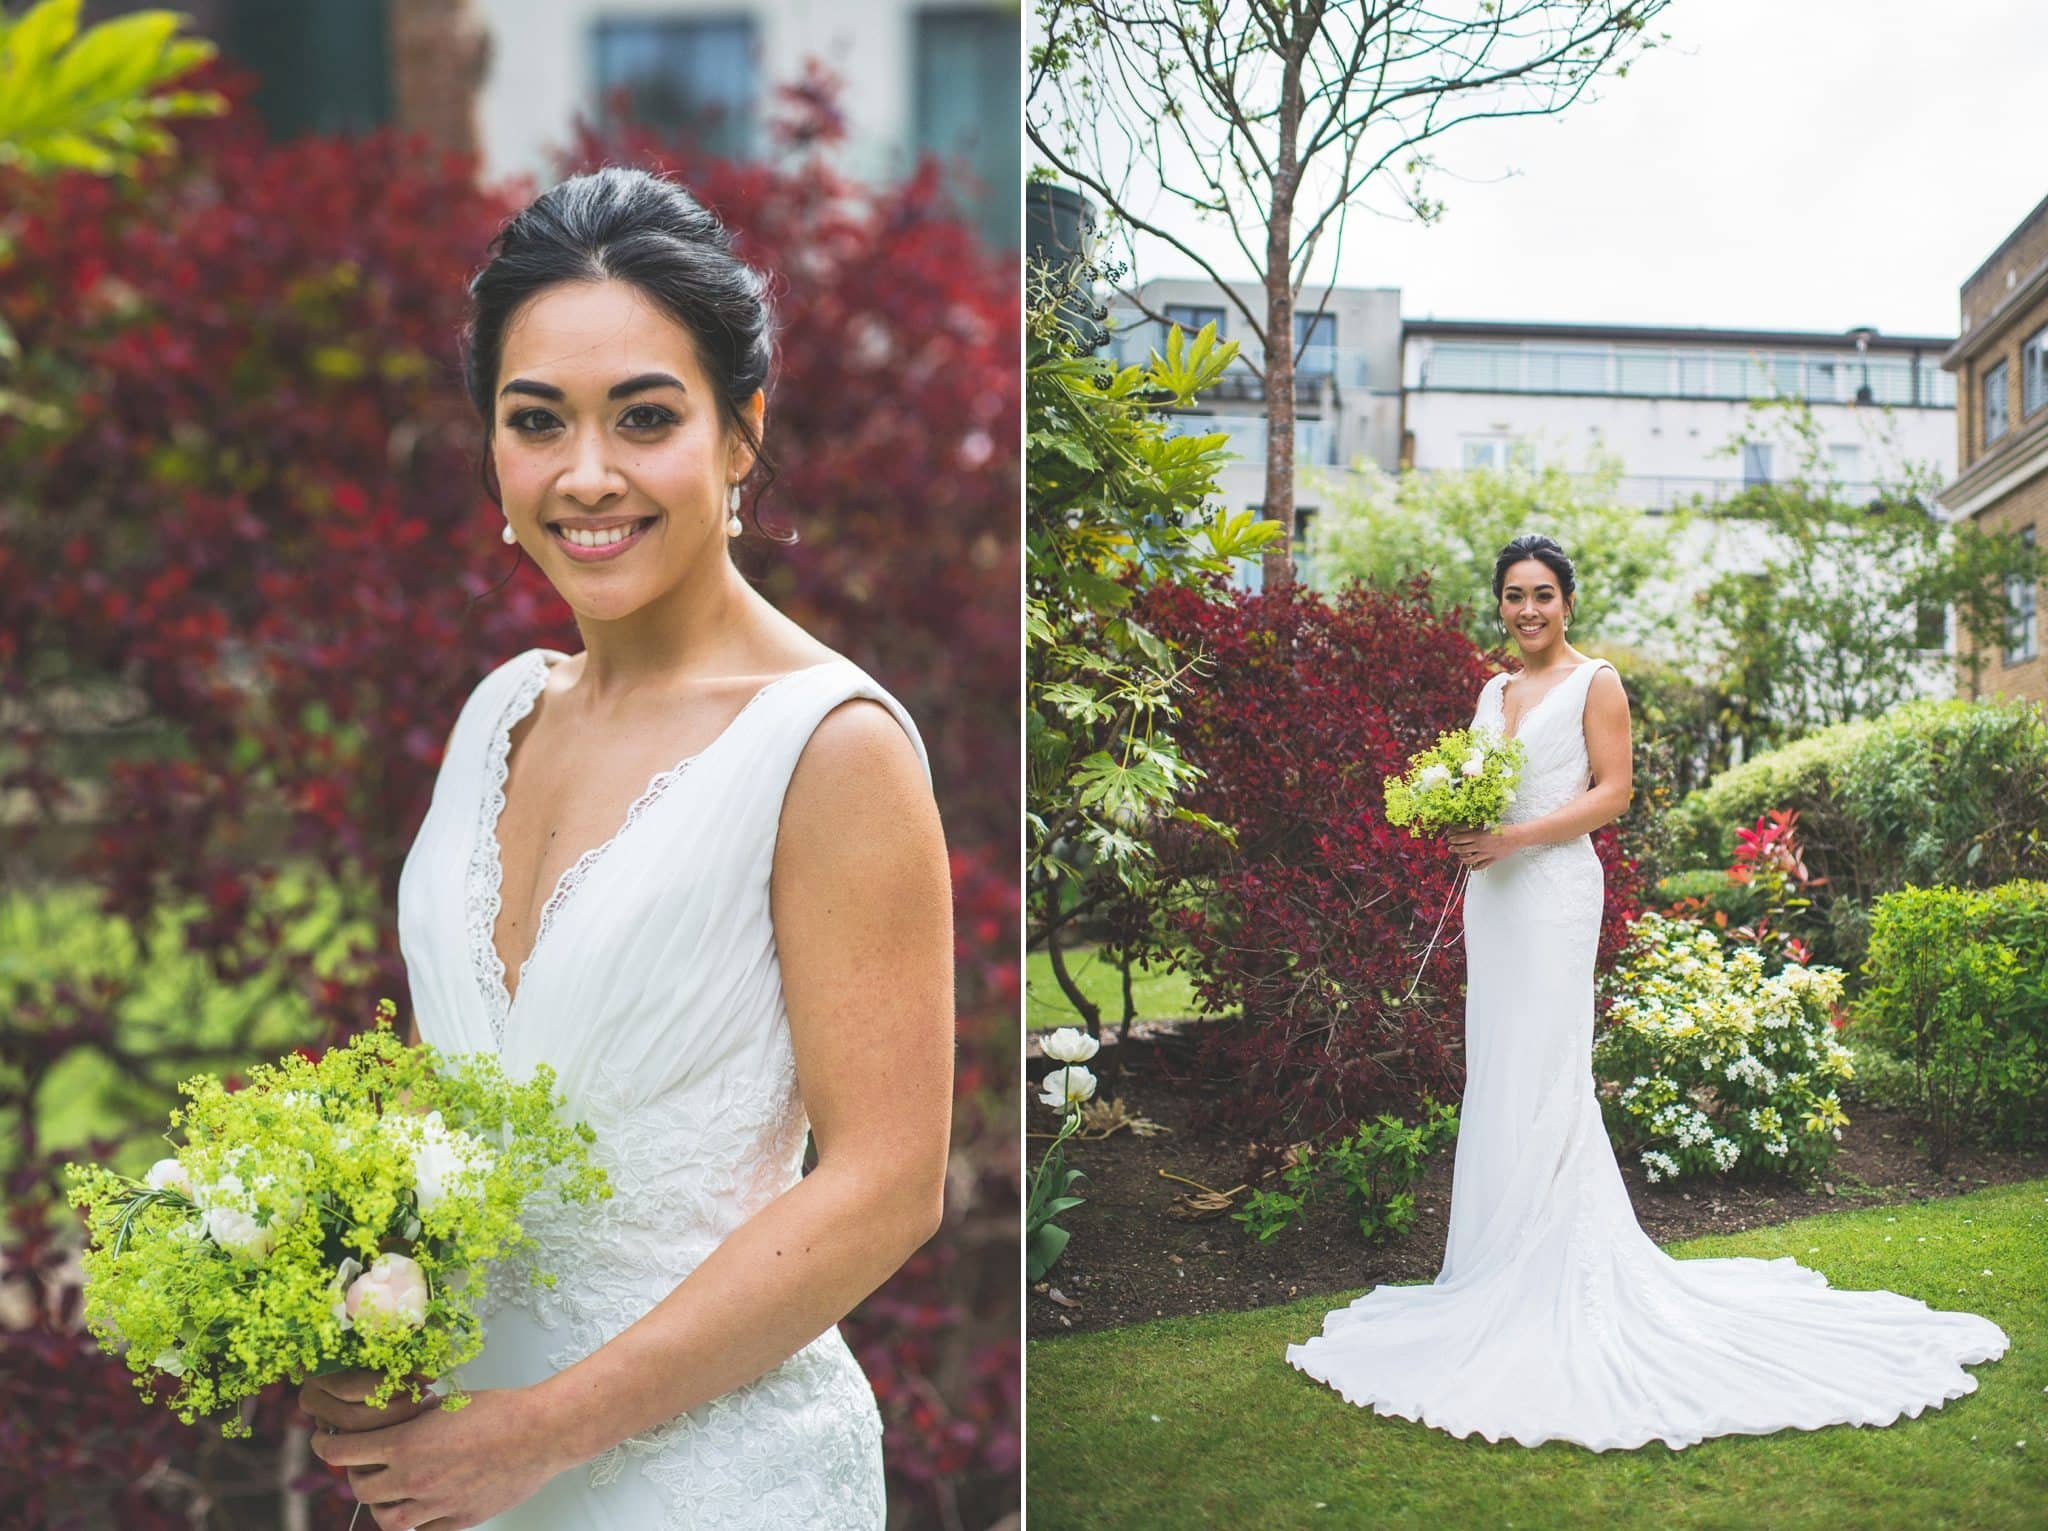 Bridal portraits for her Two Temple Place wedding